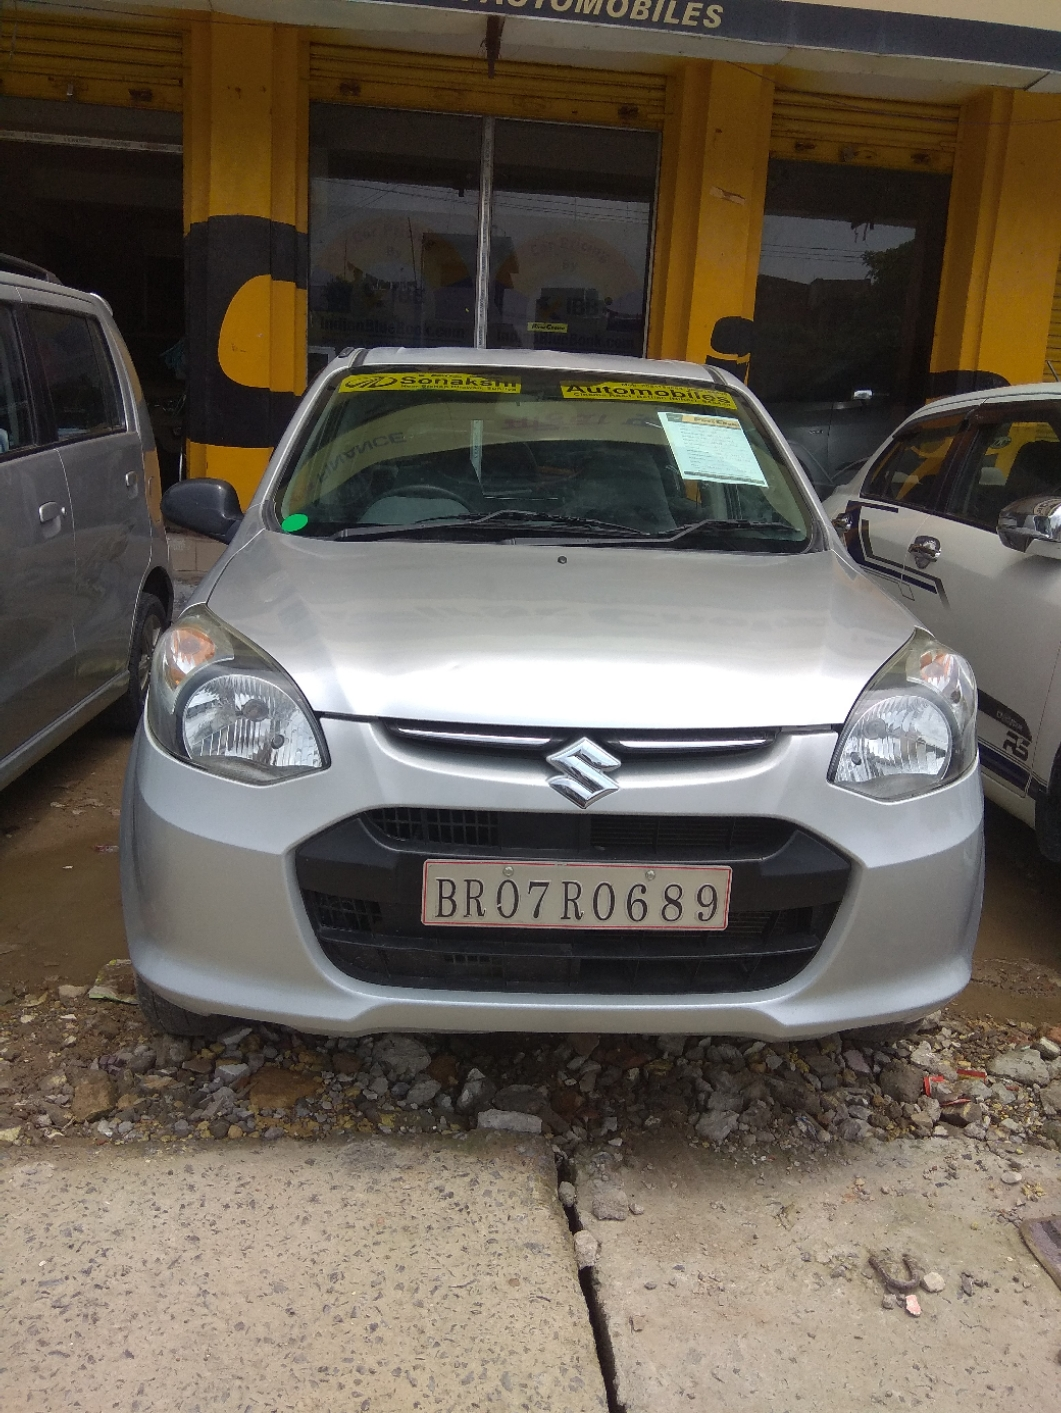 Used Cars In Bettiah - Second Hand Cars For Sale - Used Cars - MFCWL